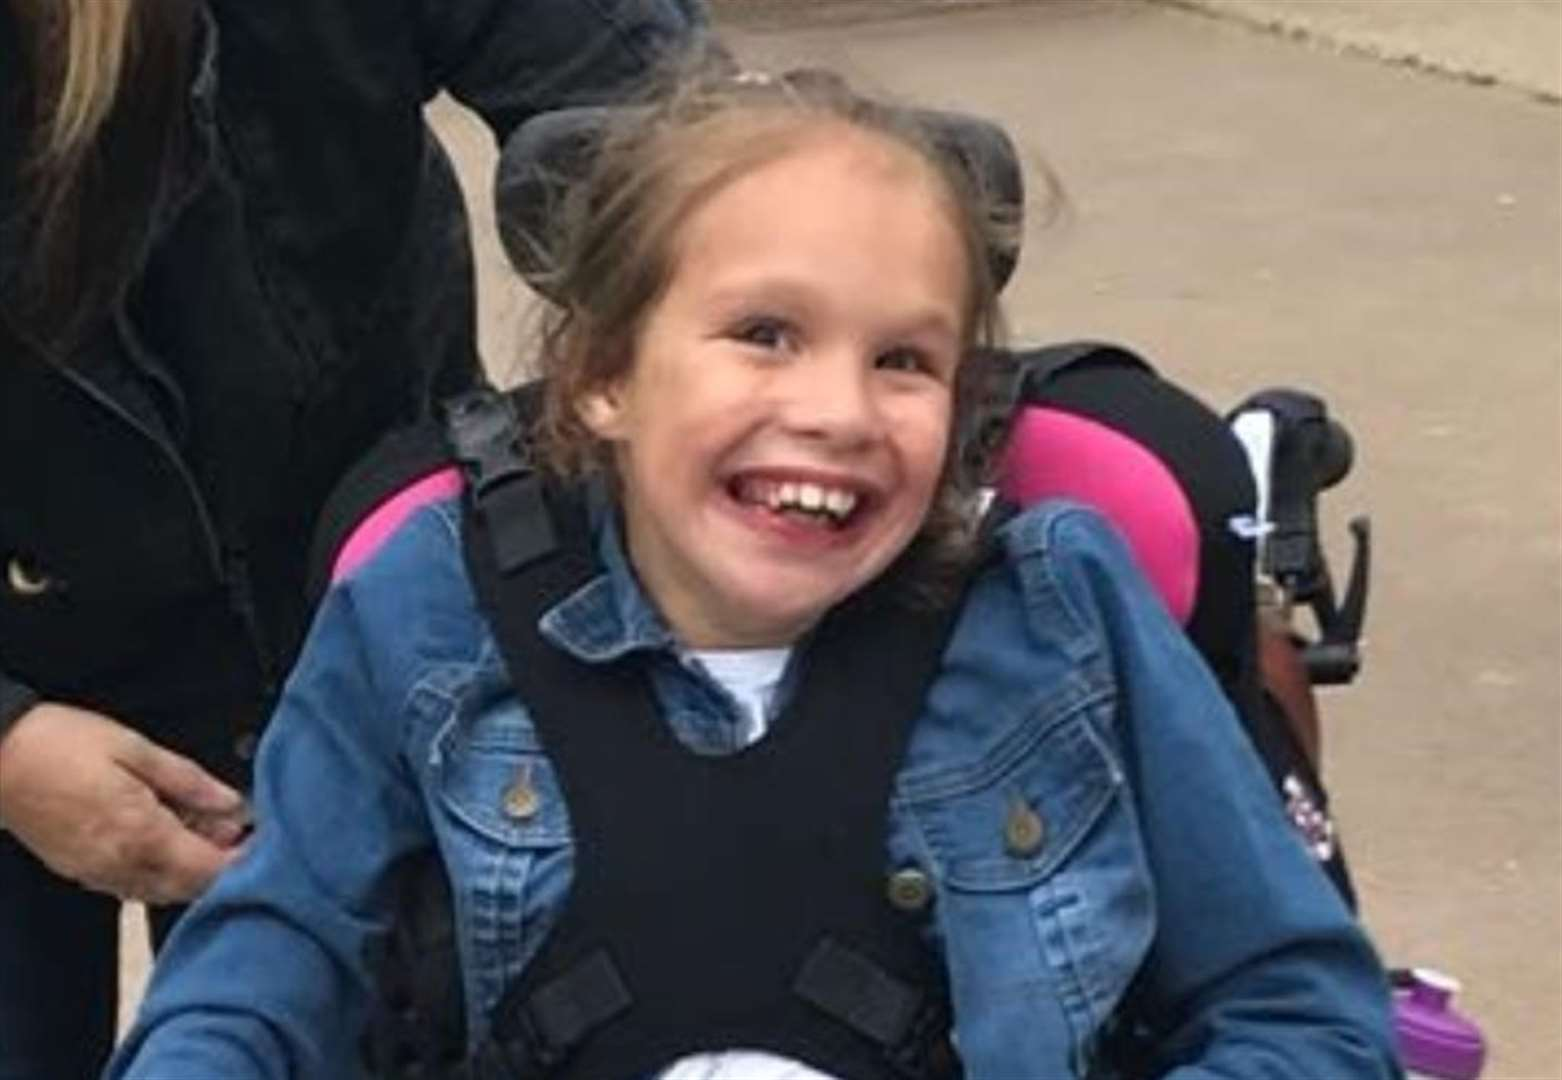 New hope for little girl with epilepsy